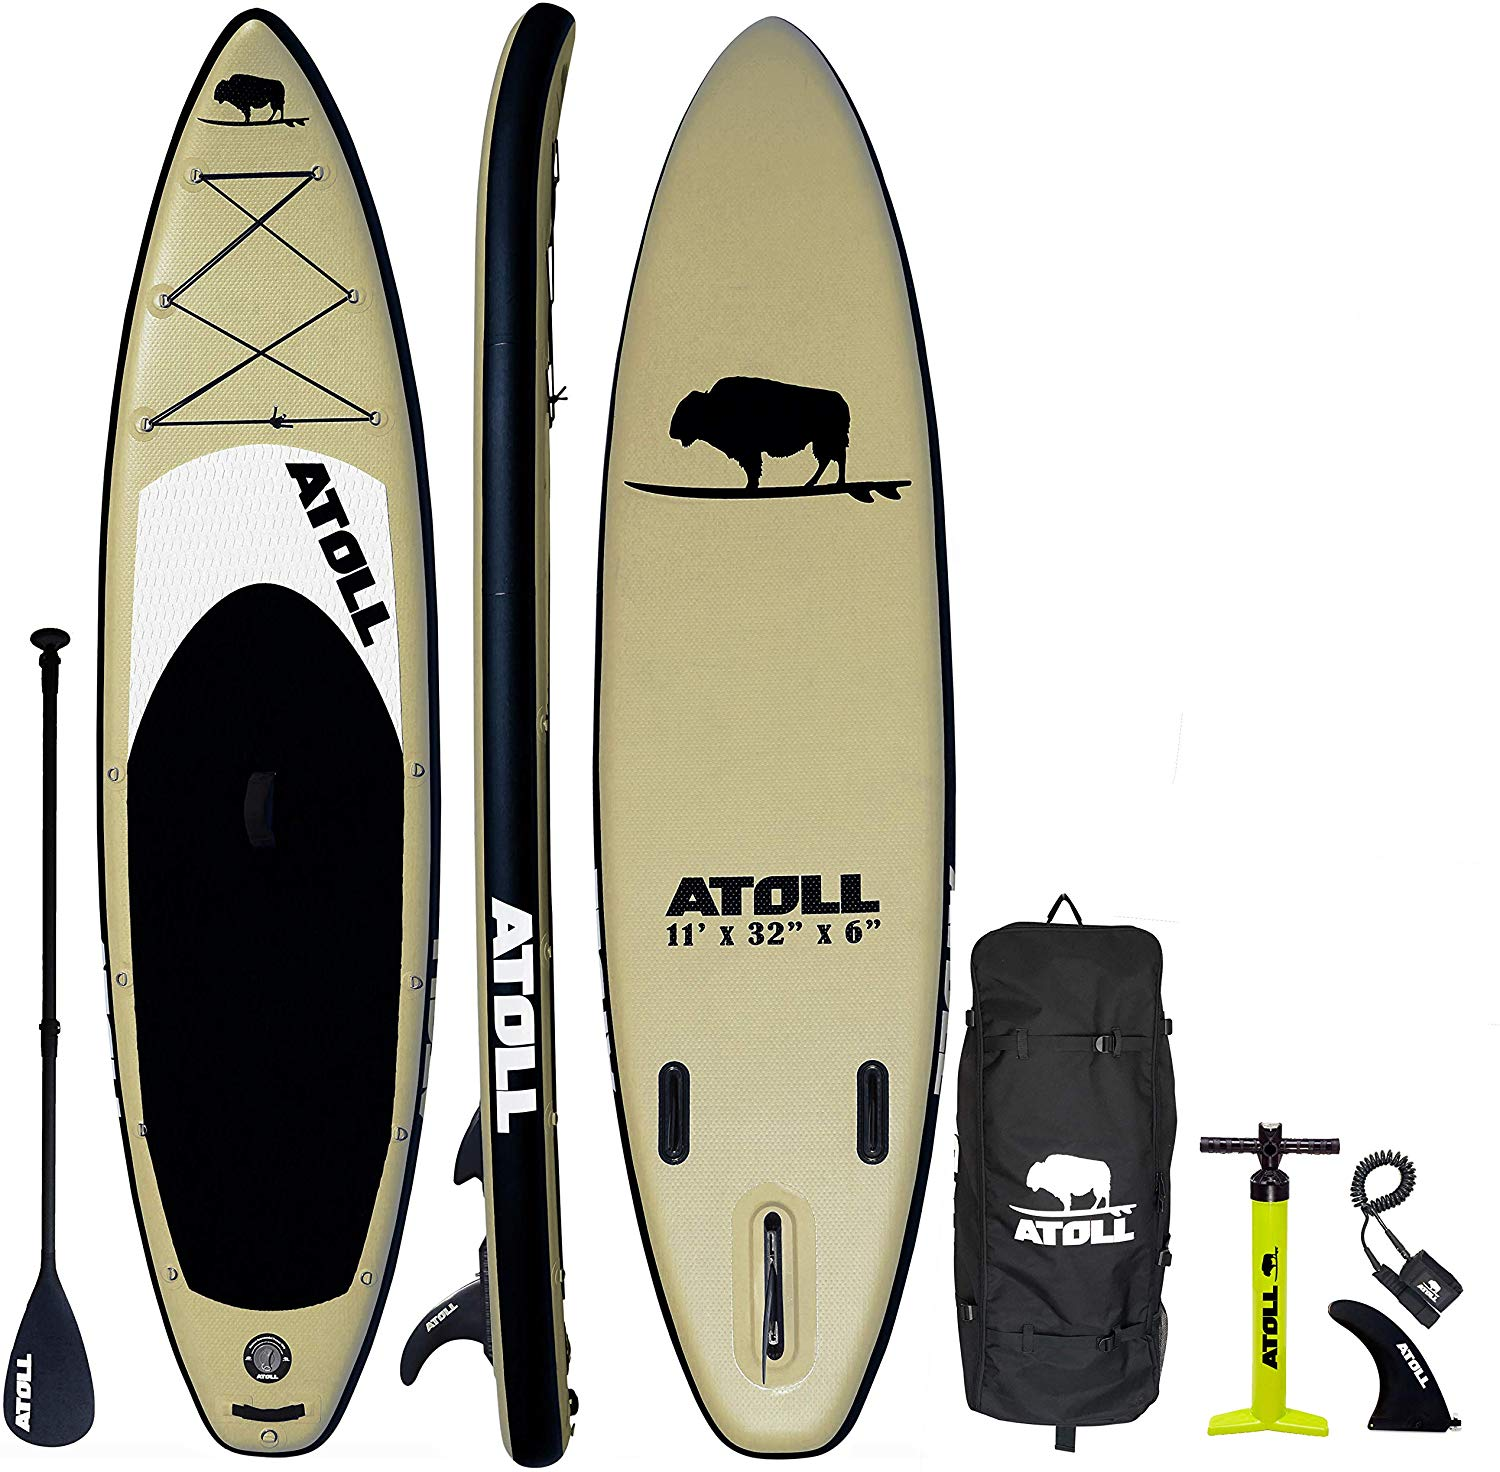 Atoll 11' foot stand up paddle board